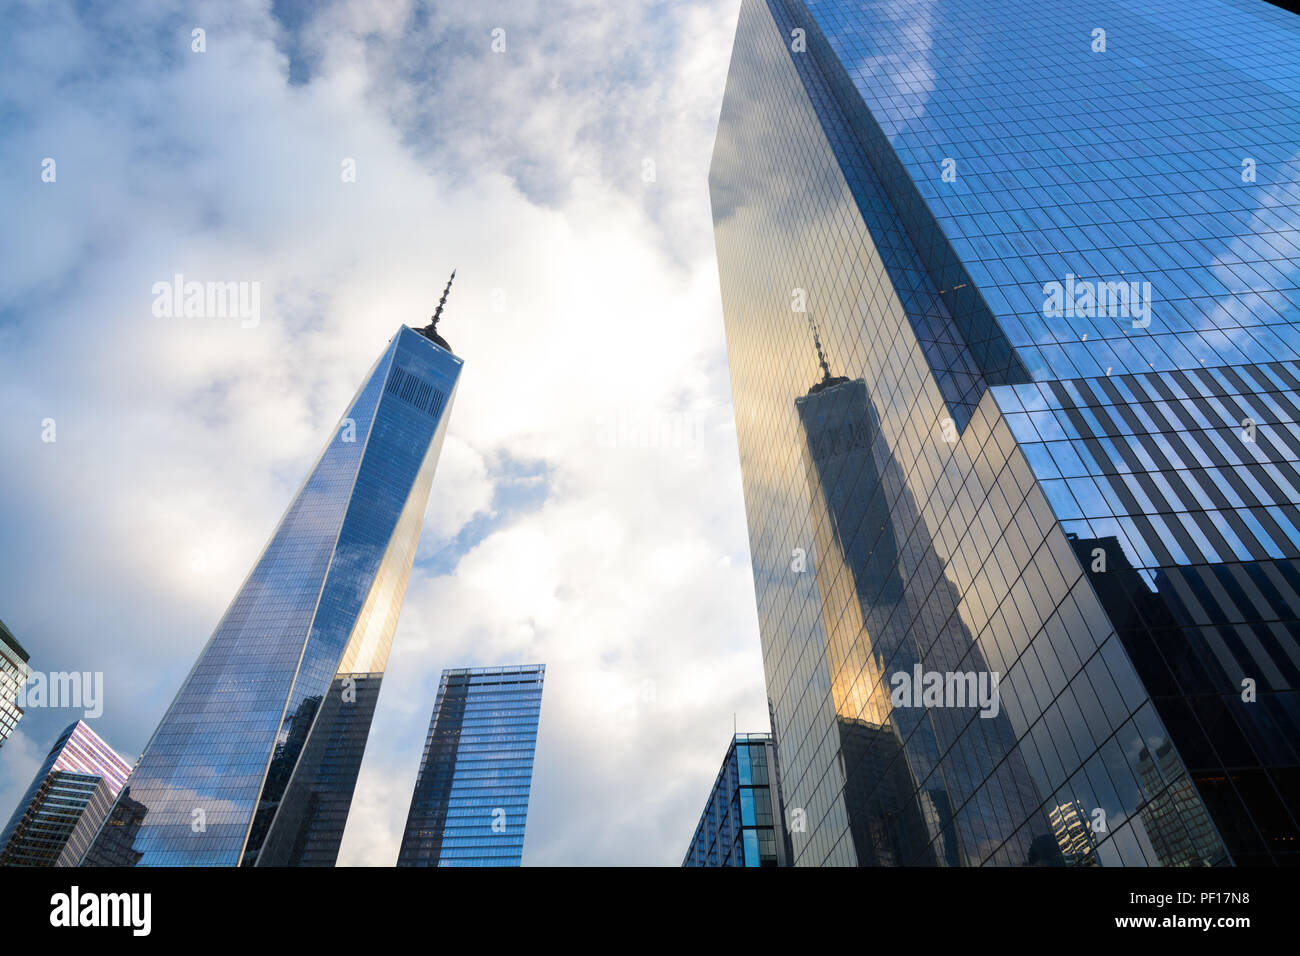 One WTC reflected in the glass curtain wall of Four WTC in Lower Manhattan, New York City. - Stock Image